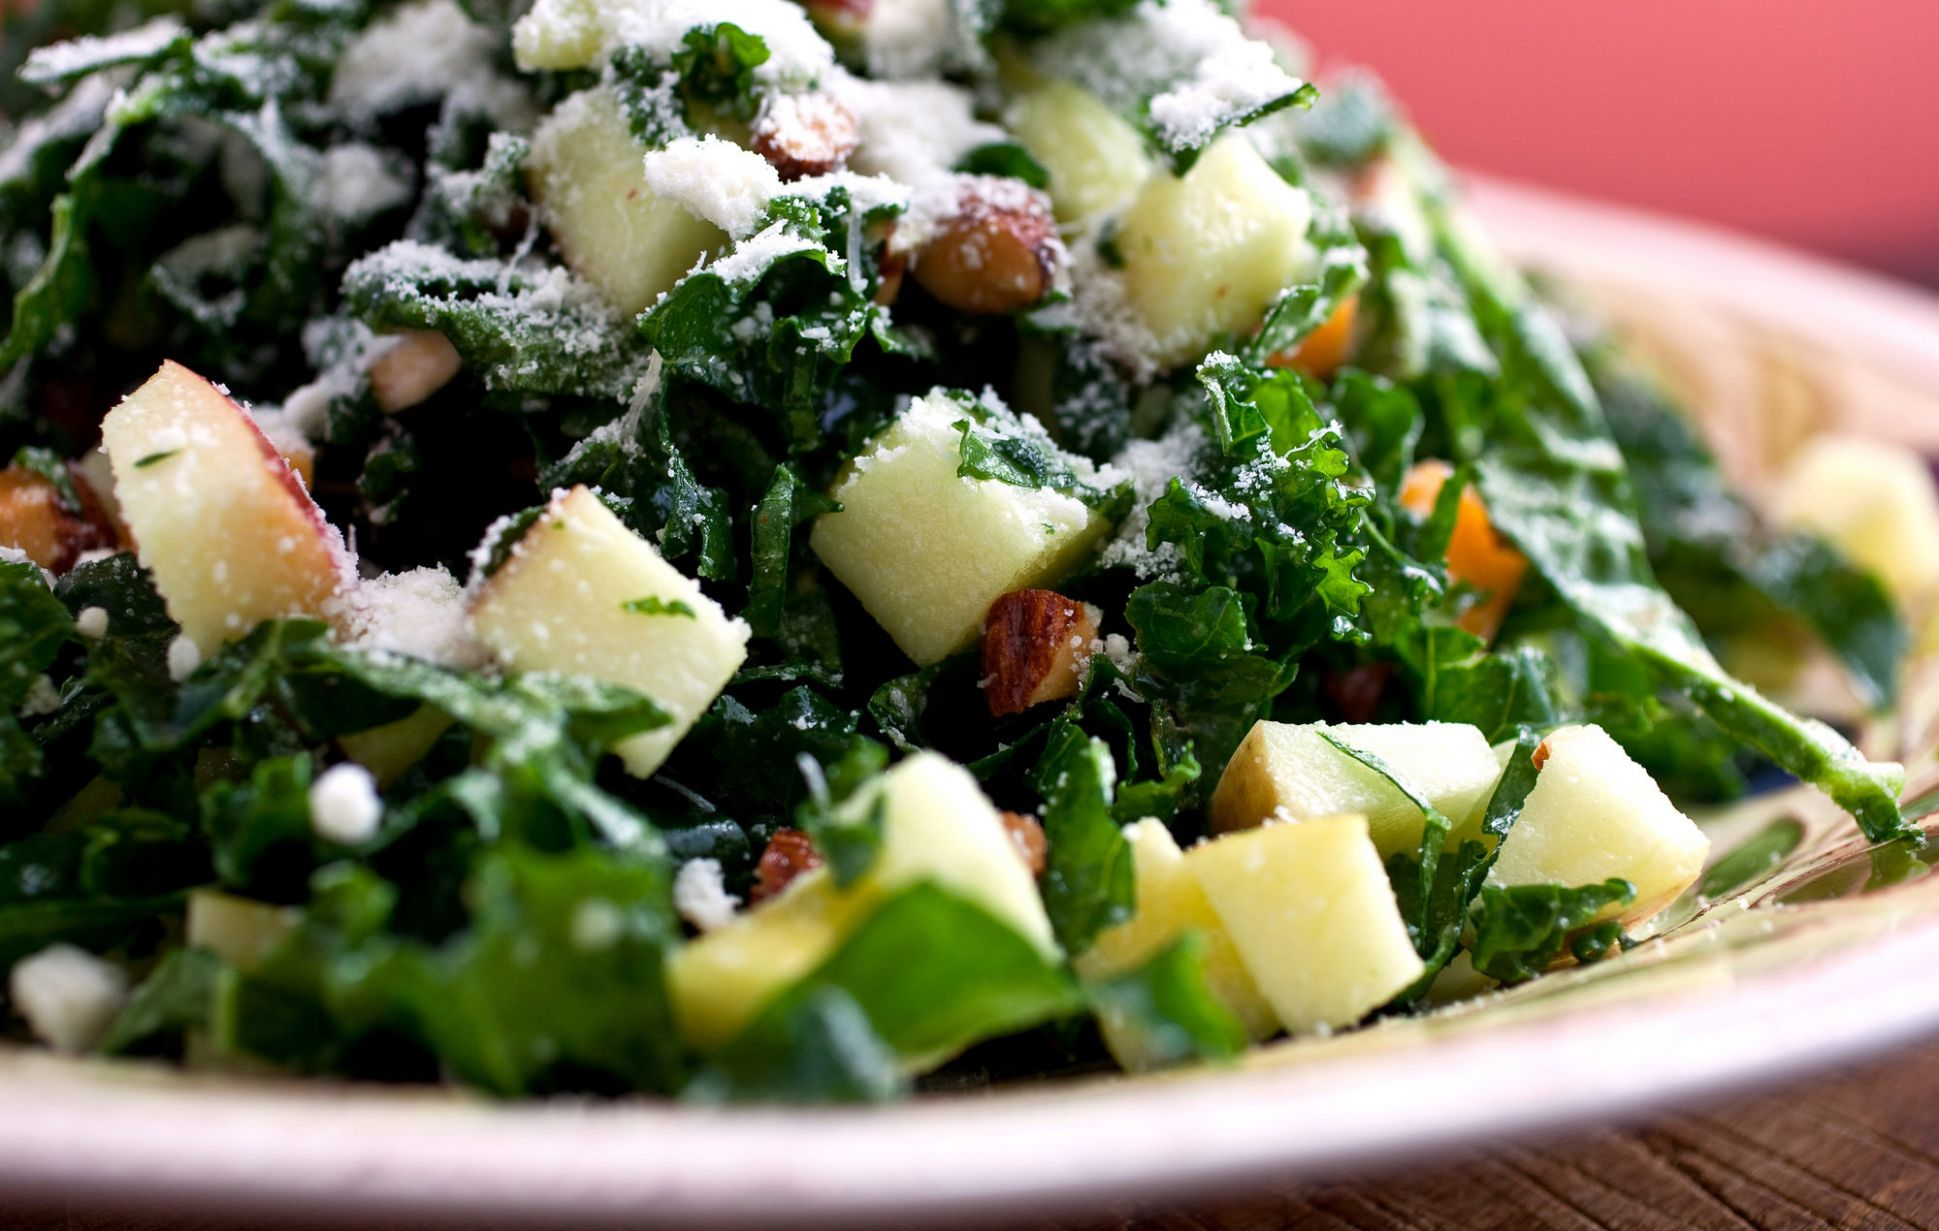 Kale Salad With Apples, Cheddar and Toasted Almonds or Pine Nuts ..